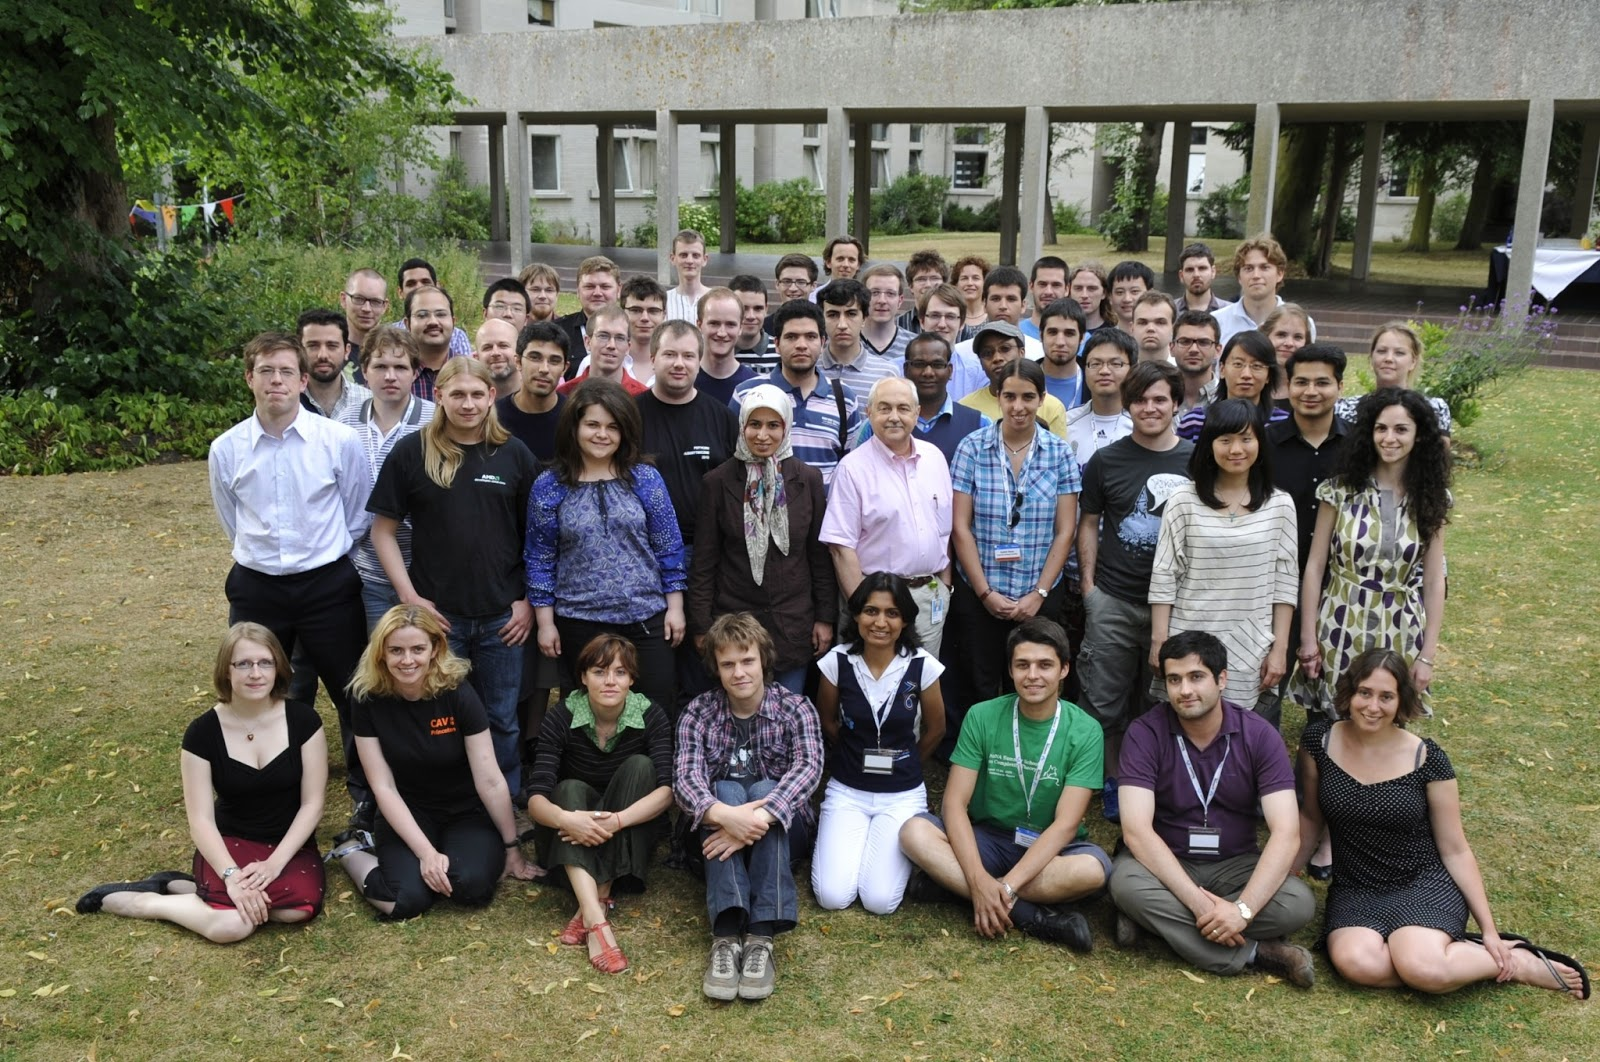 Microsoft Research Group Shot